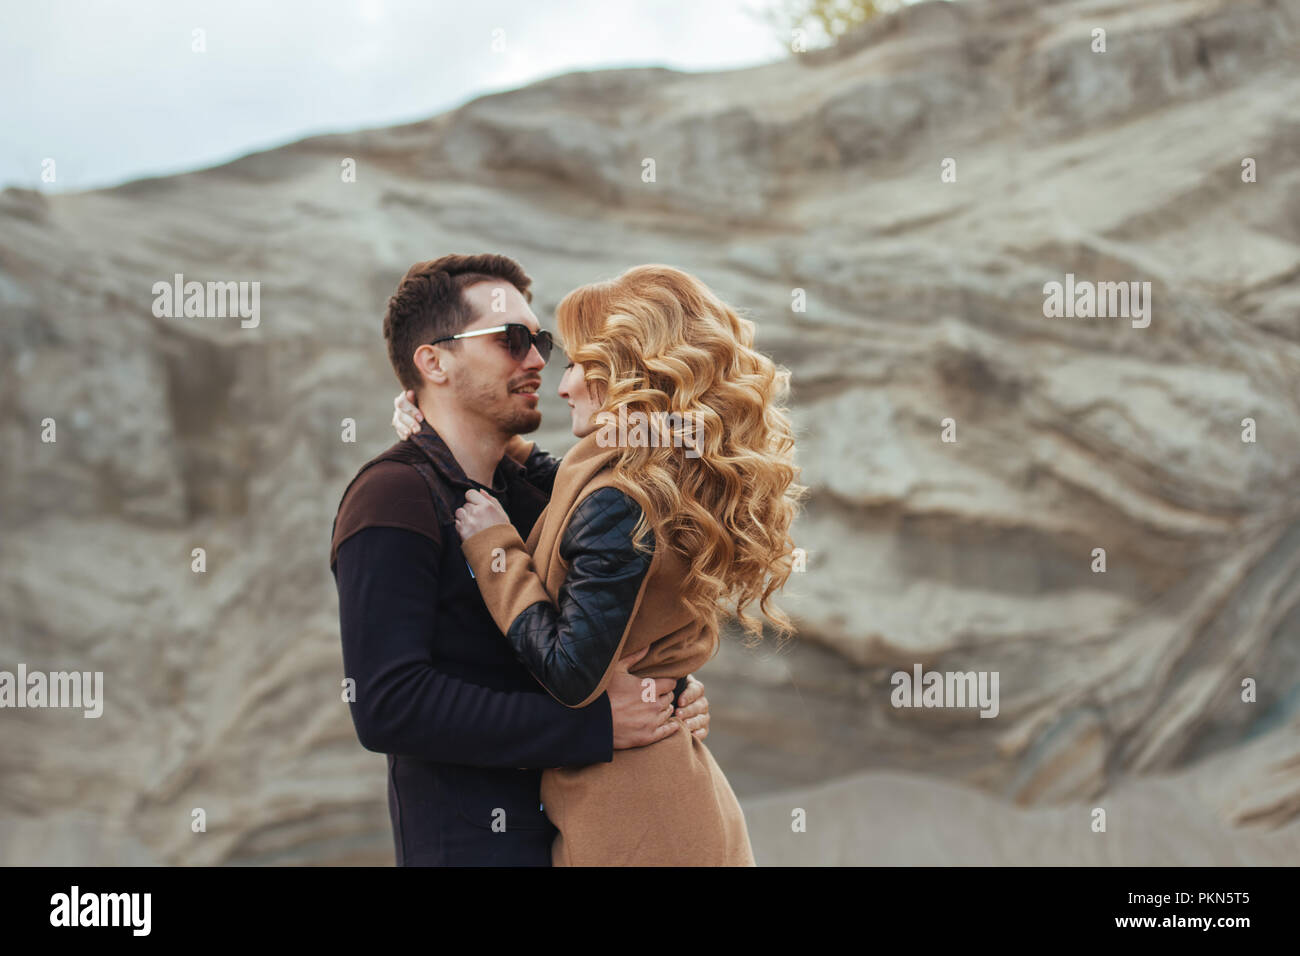 Beautiful couple in love on Valentine's Day. Happy young couple walking on the sandy mountains on a cloudy day - Stock Image